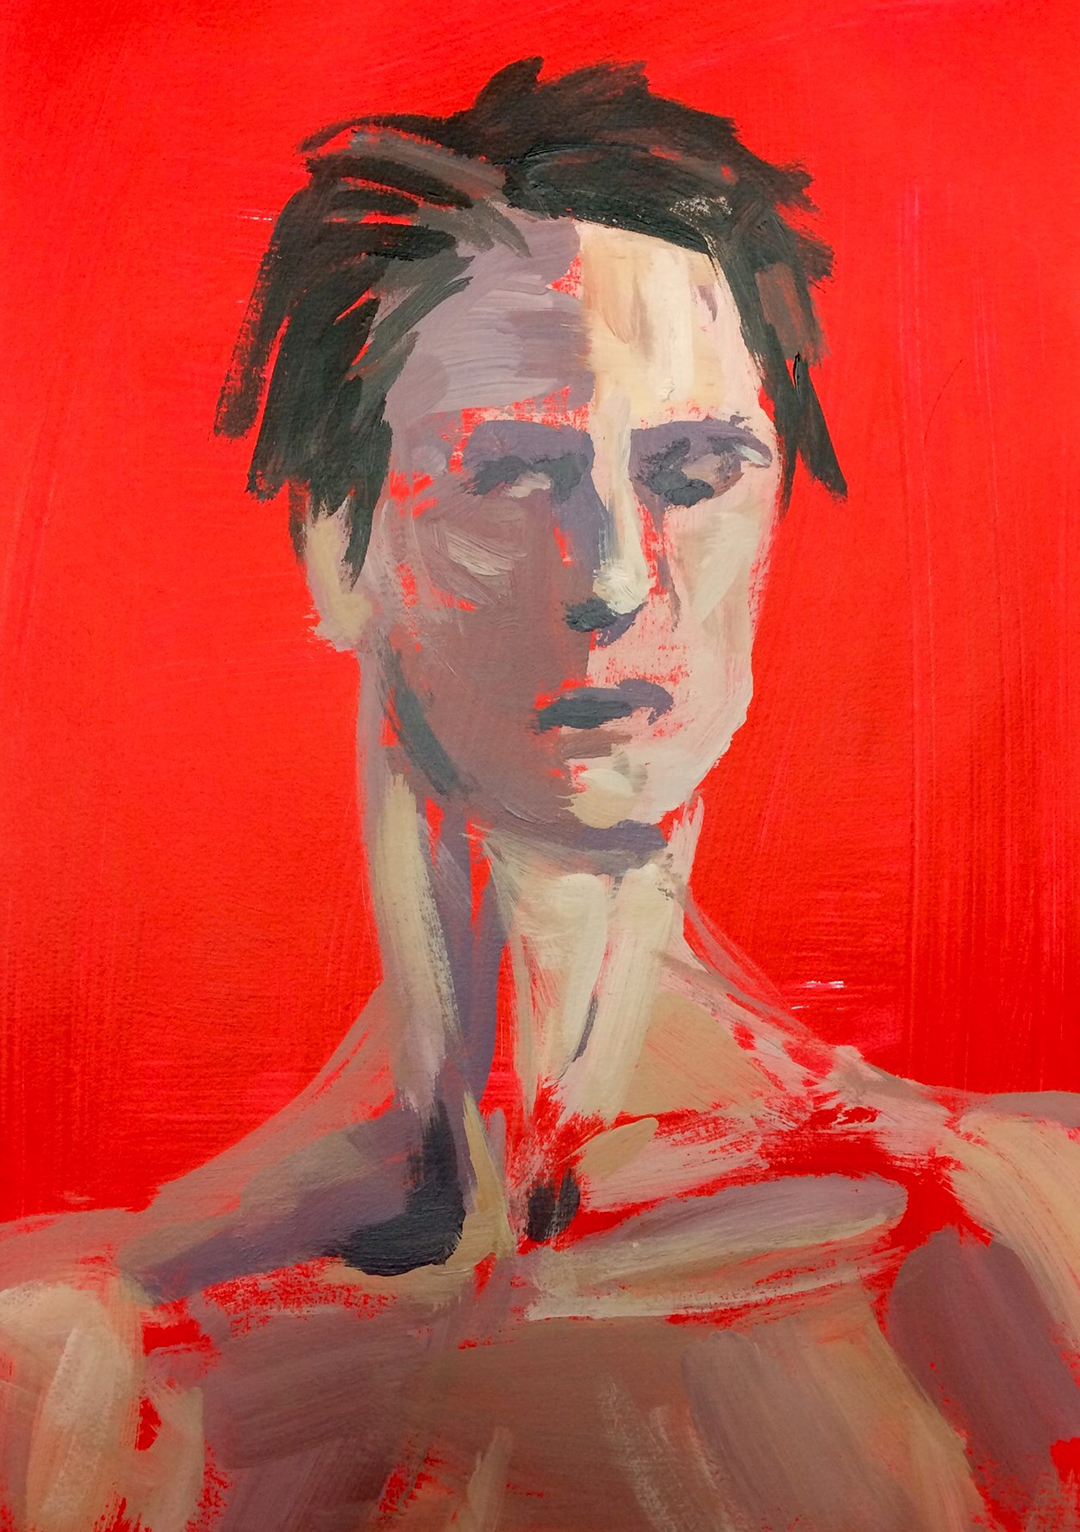 Red Jess Miller Acrylic on primed paper, 58cm x 44cm, 2016